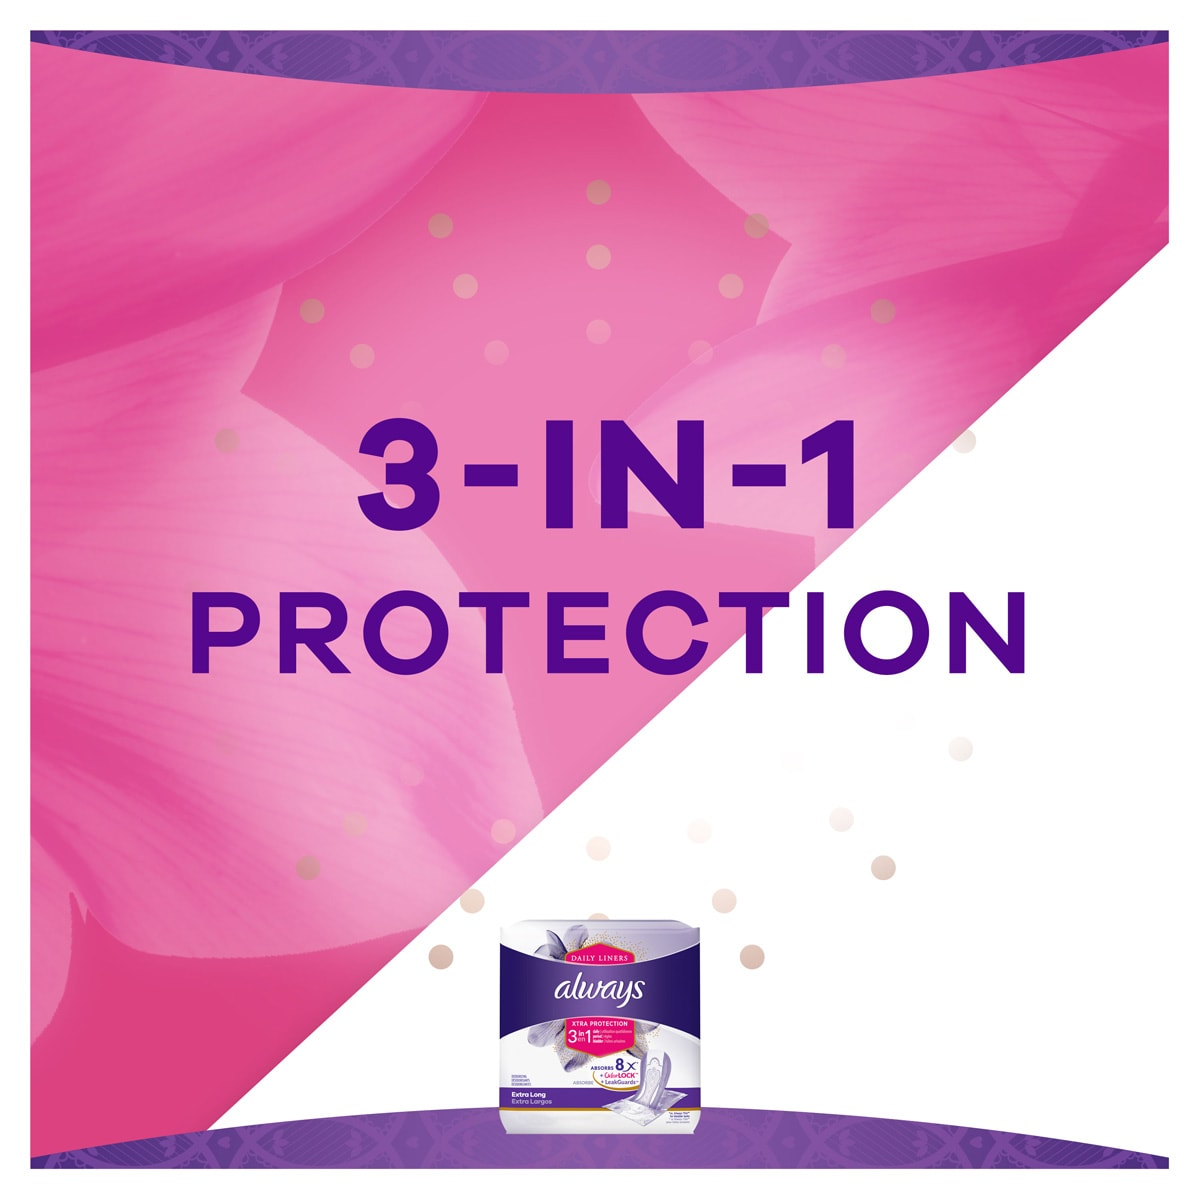 Always Xtra Protect 3 in 1 Extra Long Liners 3-In-1 Protection benefit